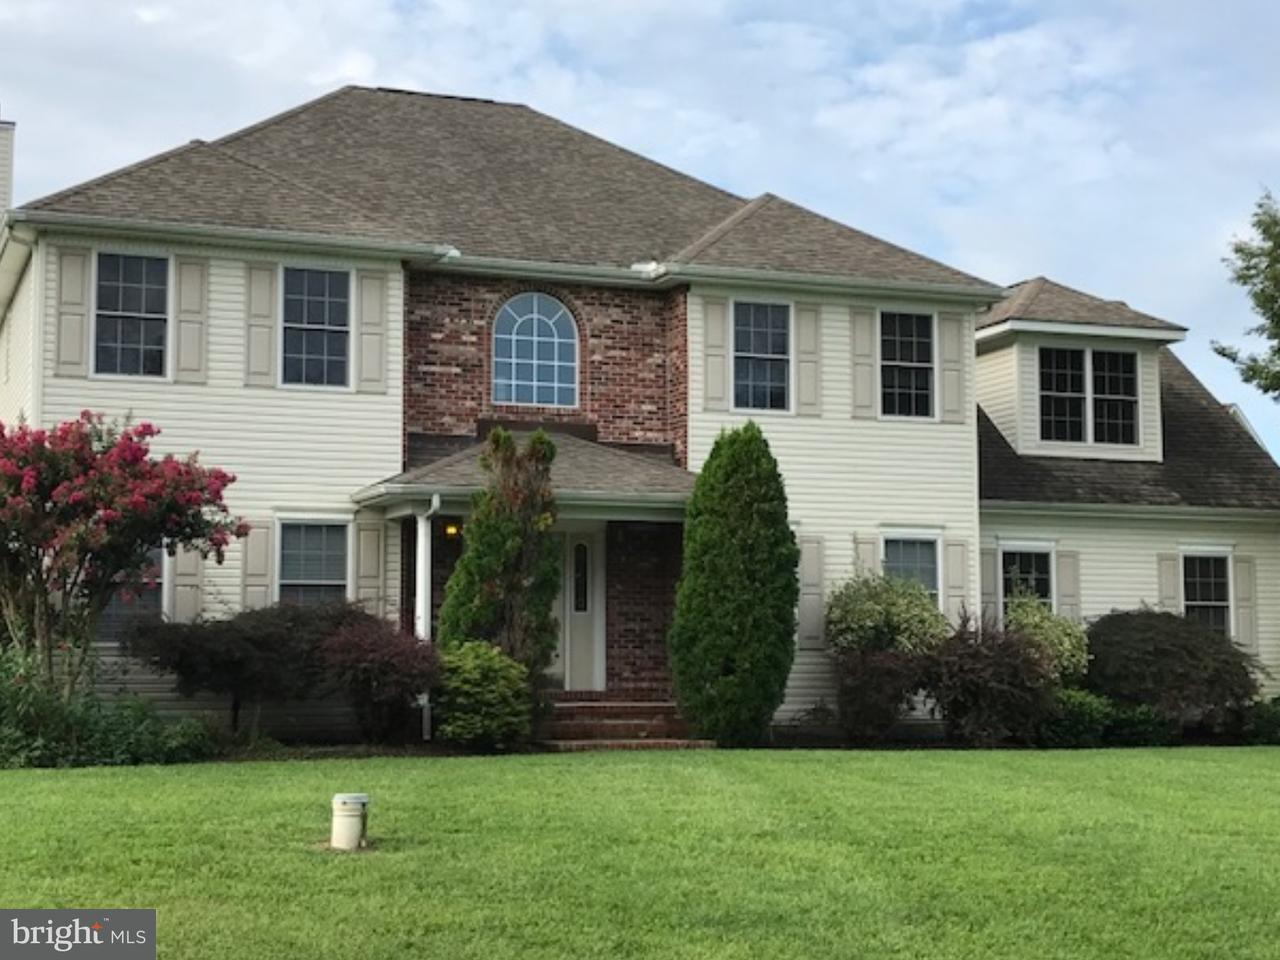 Single Family Home for Sale at 126 WISTERIA Drive Milford, Delaware 19963 United States